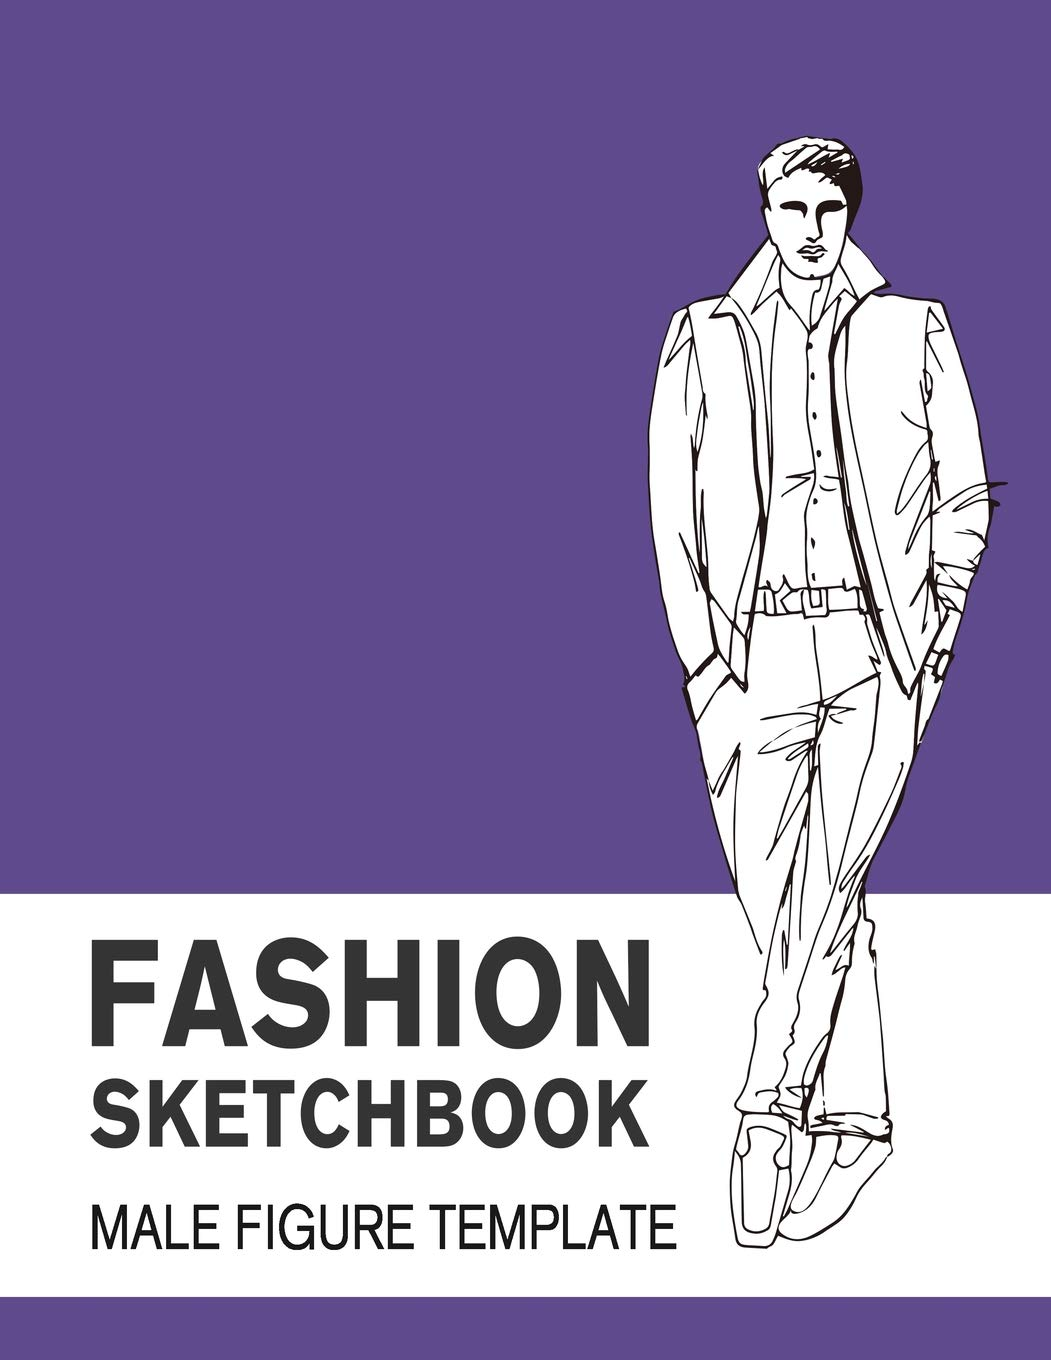 Fashion Sketchbook Male Figure Template Easily Sketch Your Fashion Design With Large Make Figure Template Derrick Lance 9781728812793 Amazon Com Books